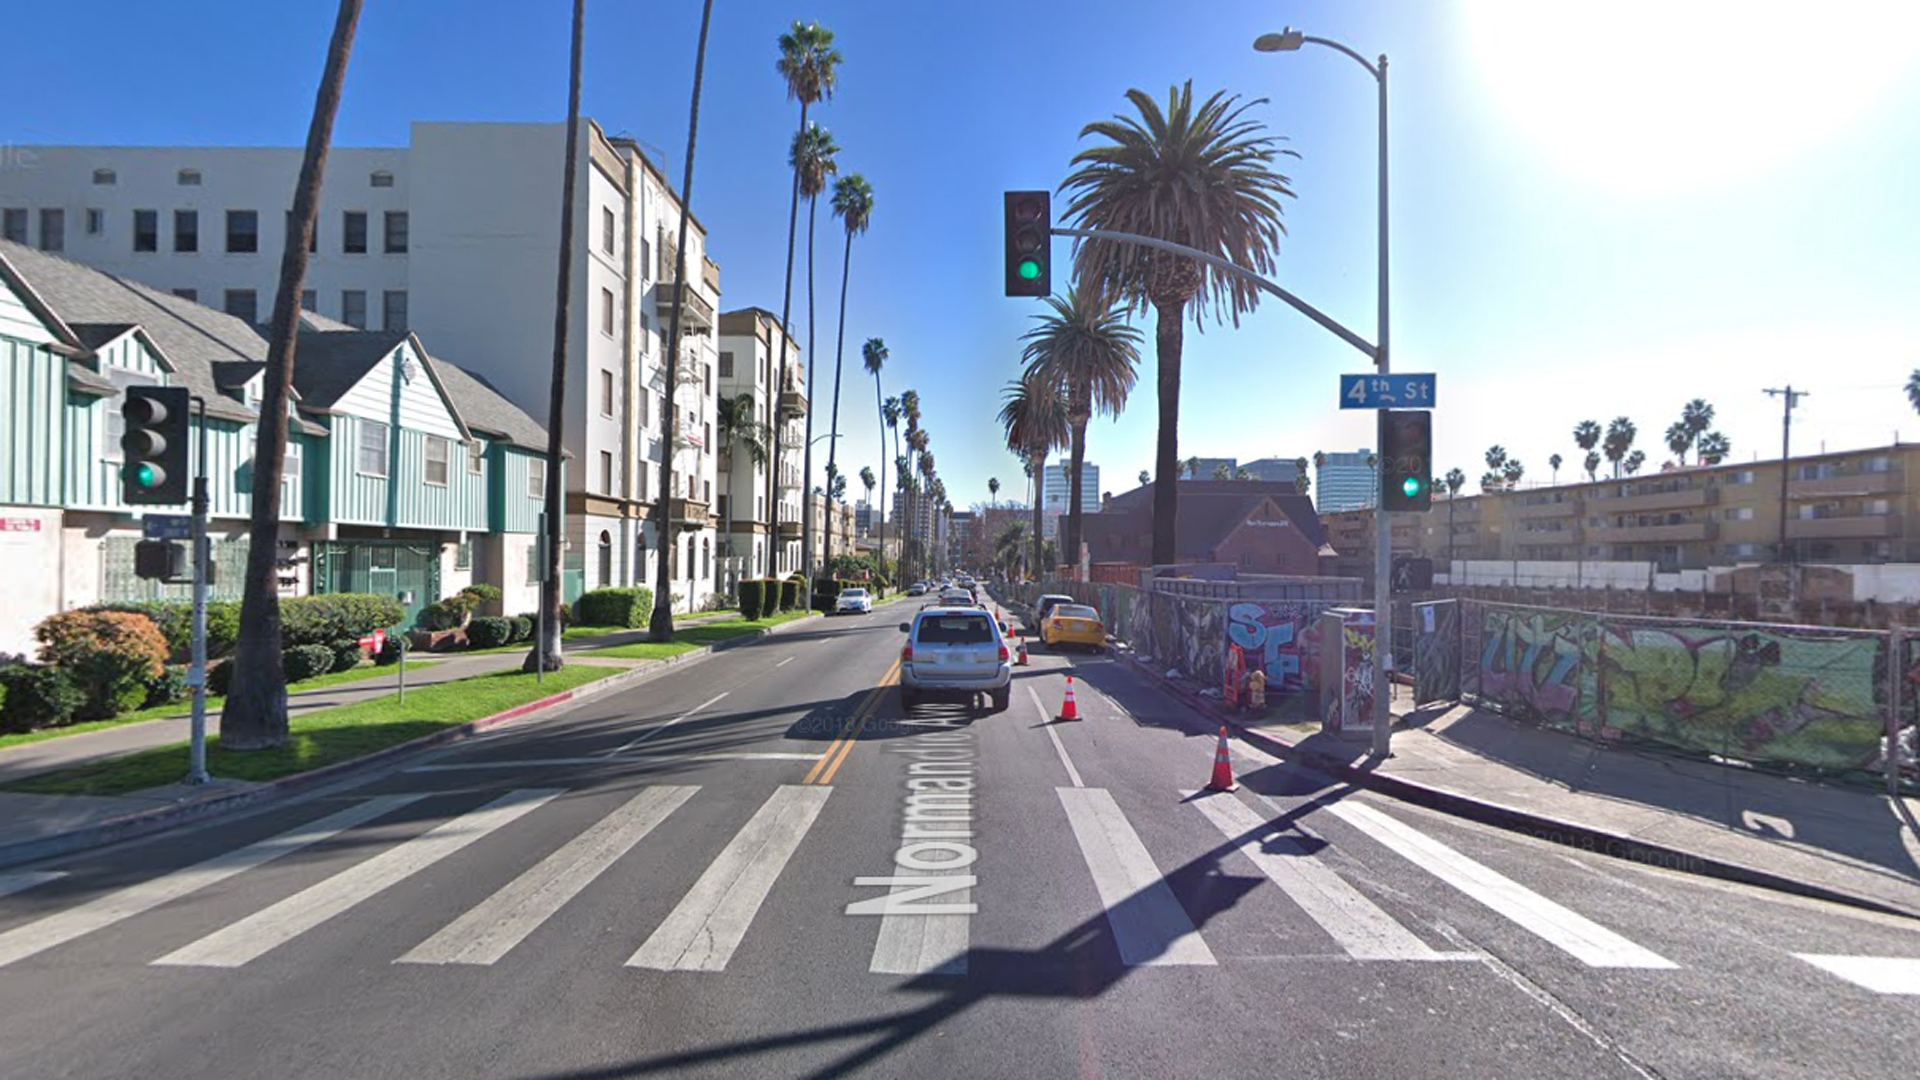 The 400 block of Normandie Avenue in Koreatown, as pictured in a Google Street View map in February of 2018.